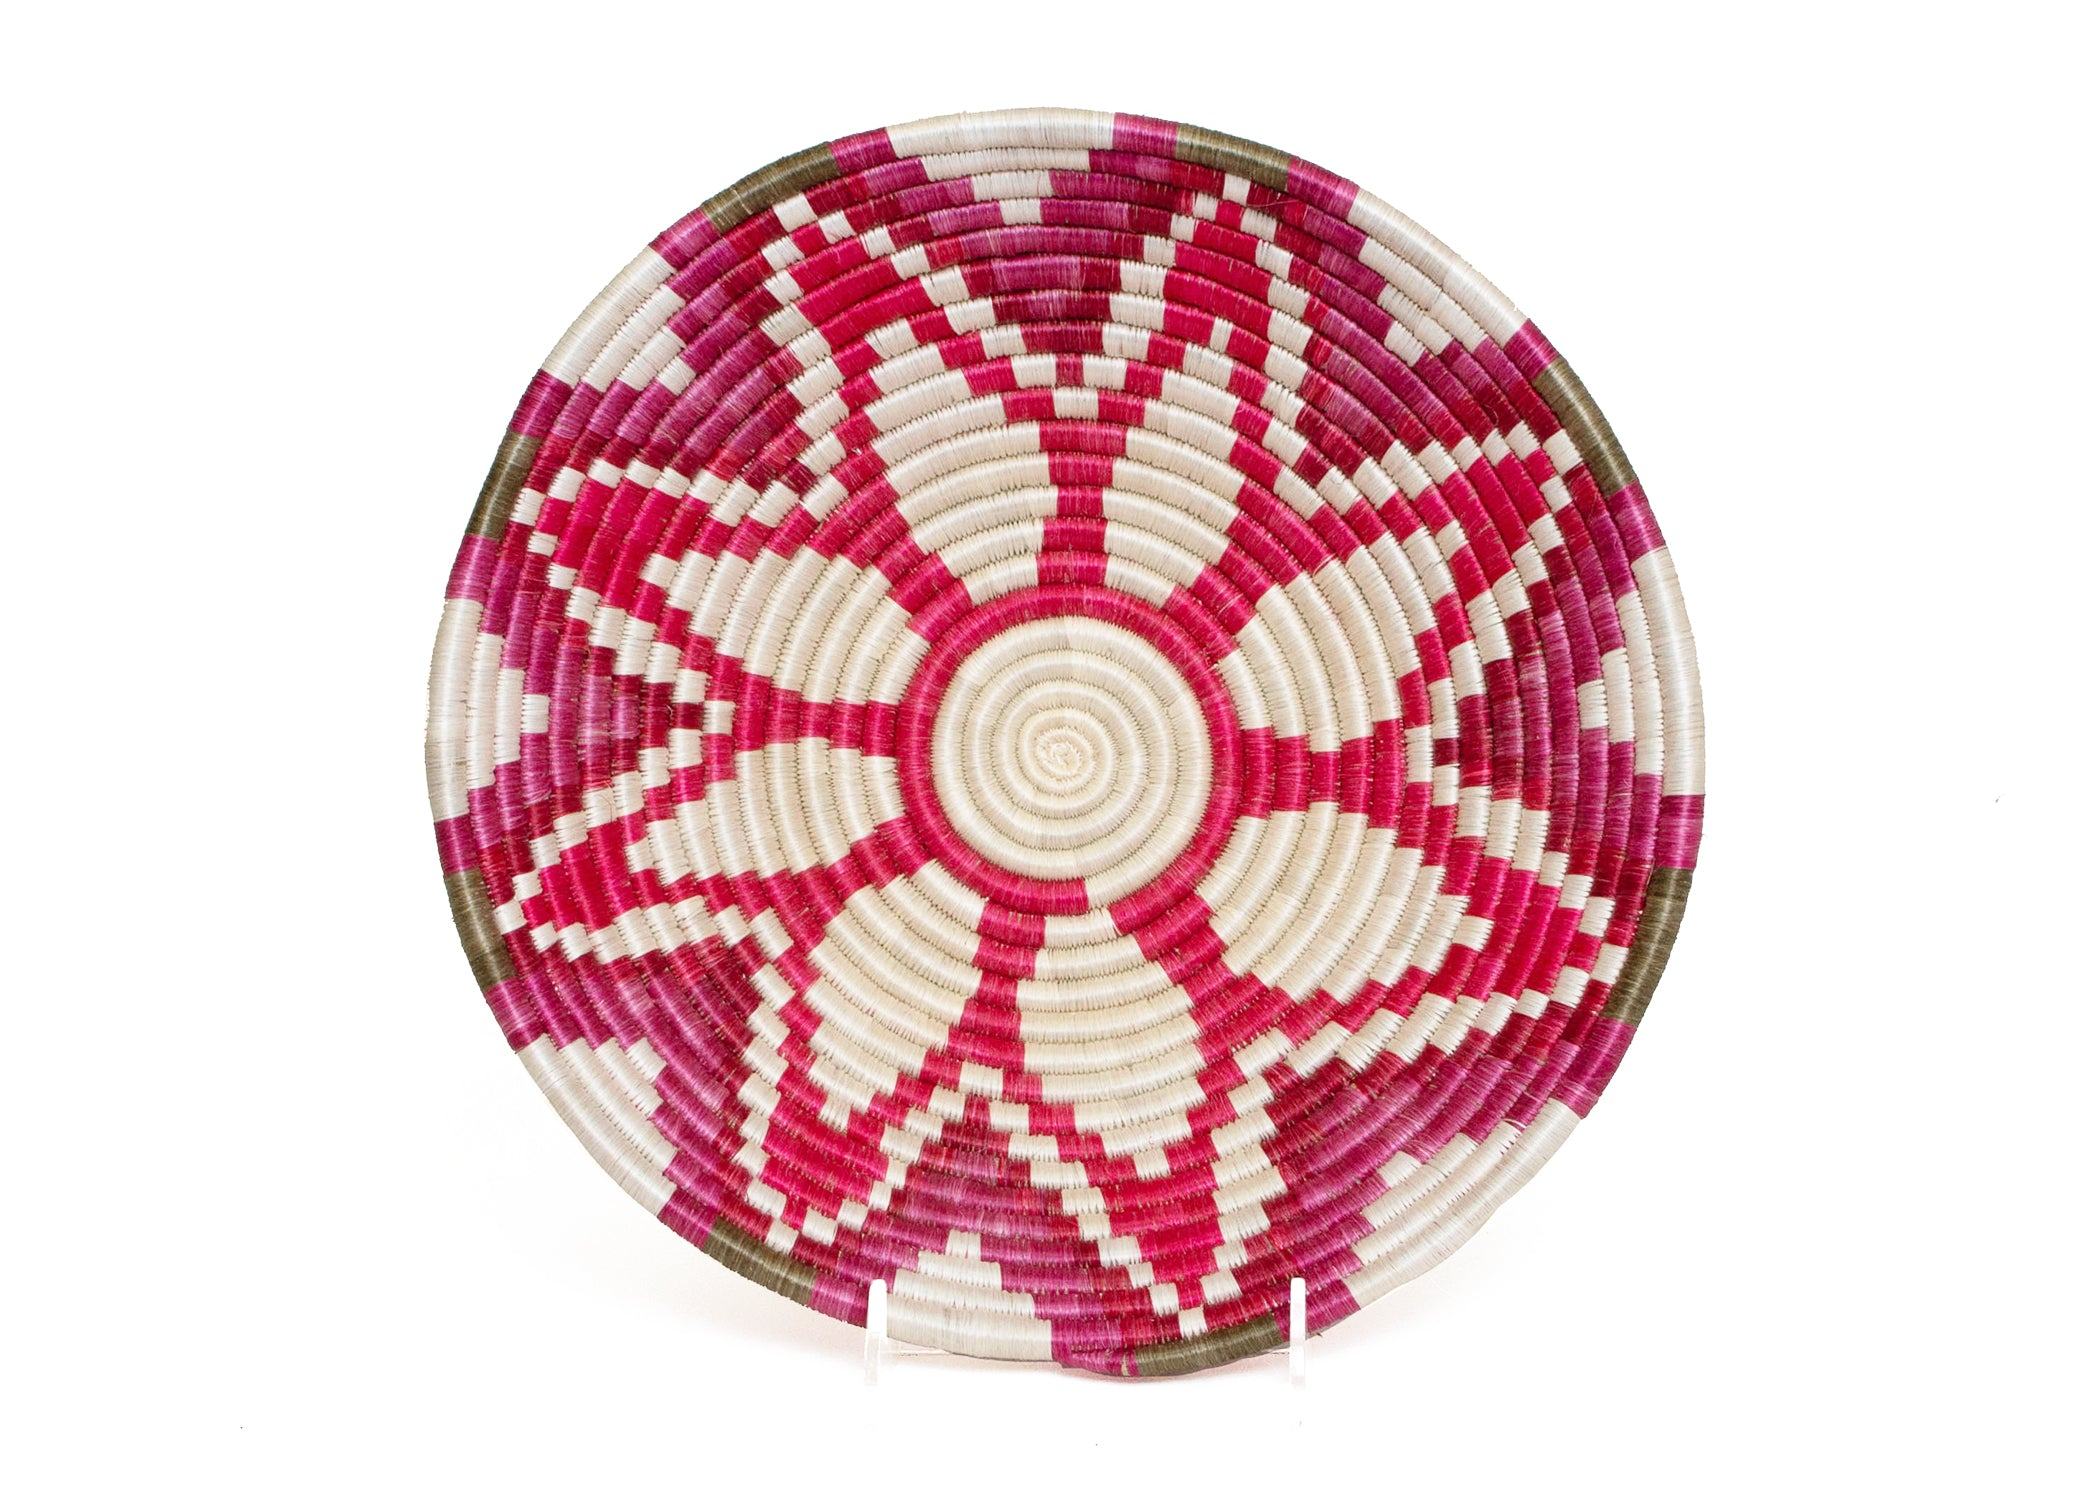 Extra Large Poinsettia Bowl - KAZI - Artisan made high quality home decor and wall art